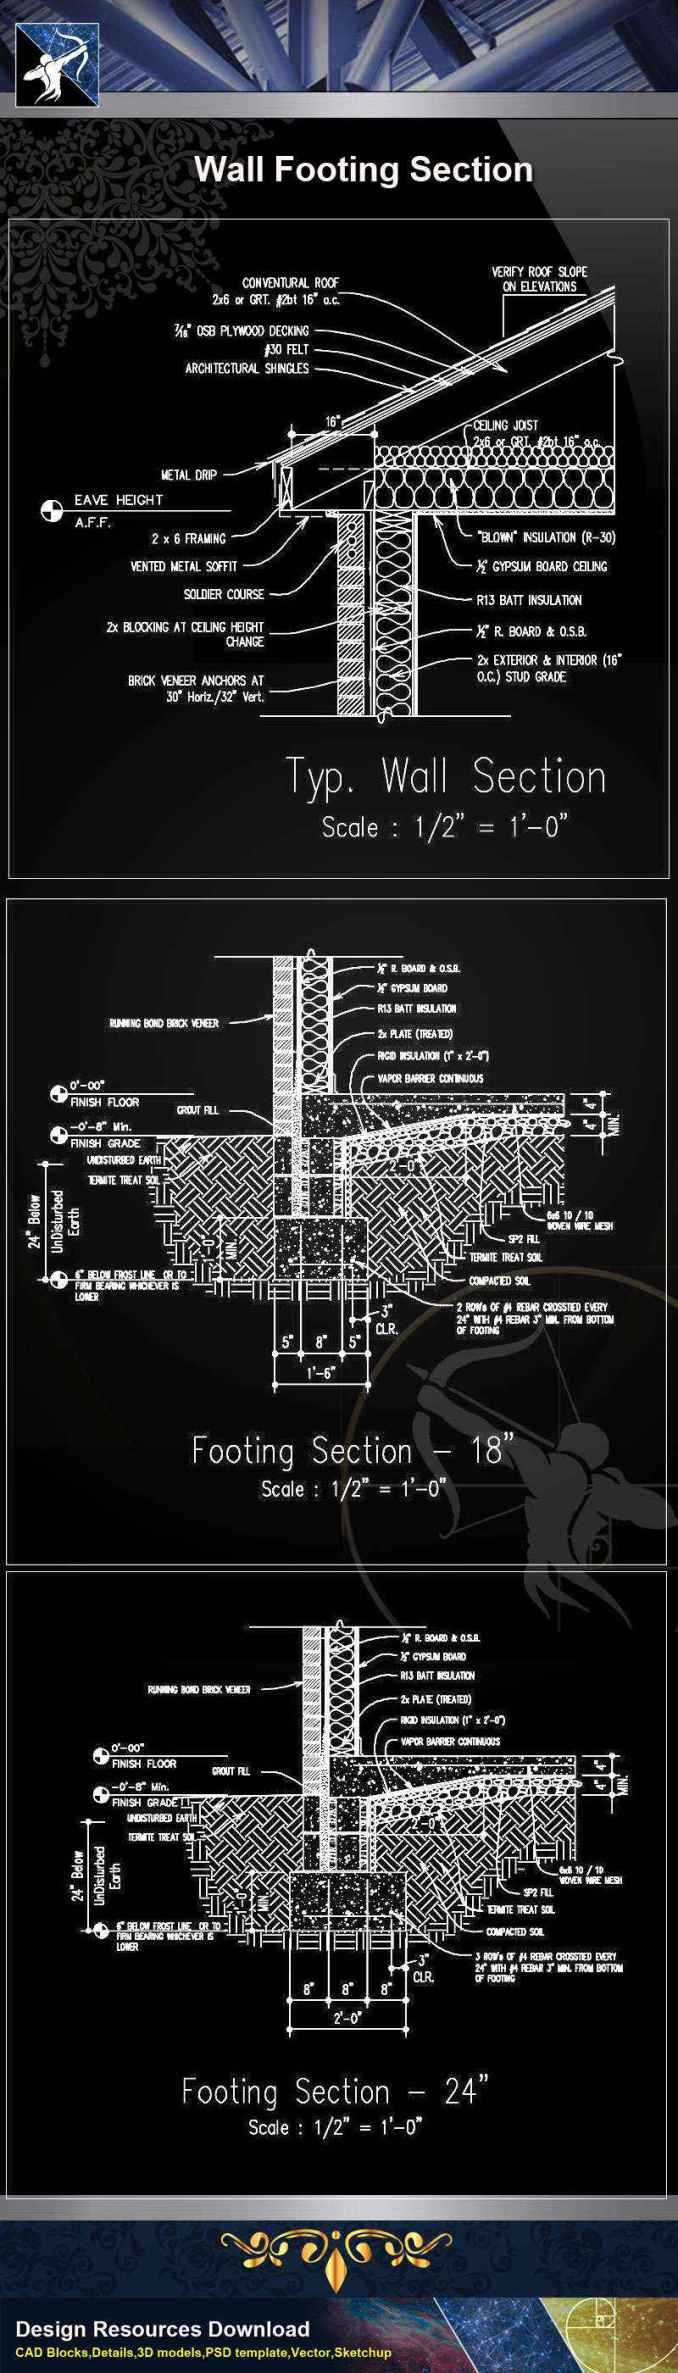 【Architecture CAD Details Collections】Wall Footing Section CAD Details